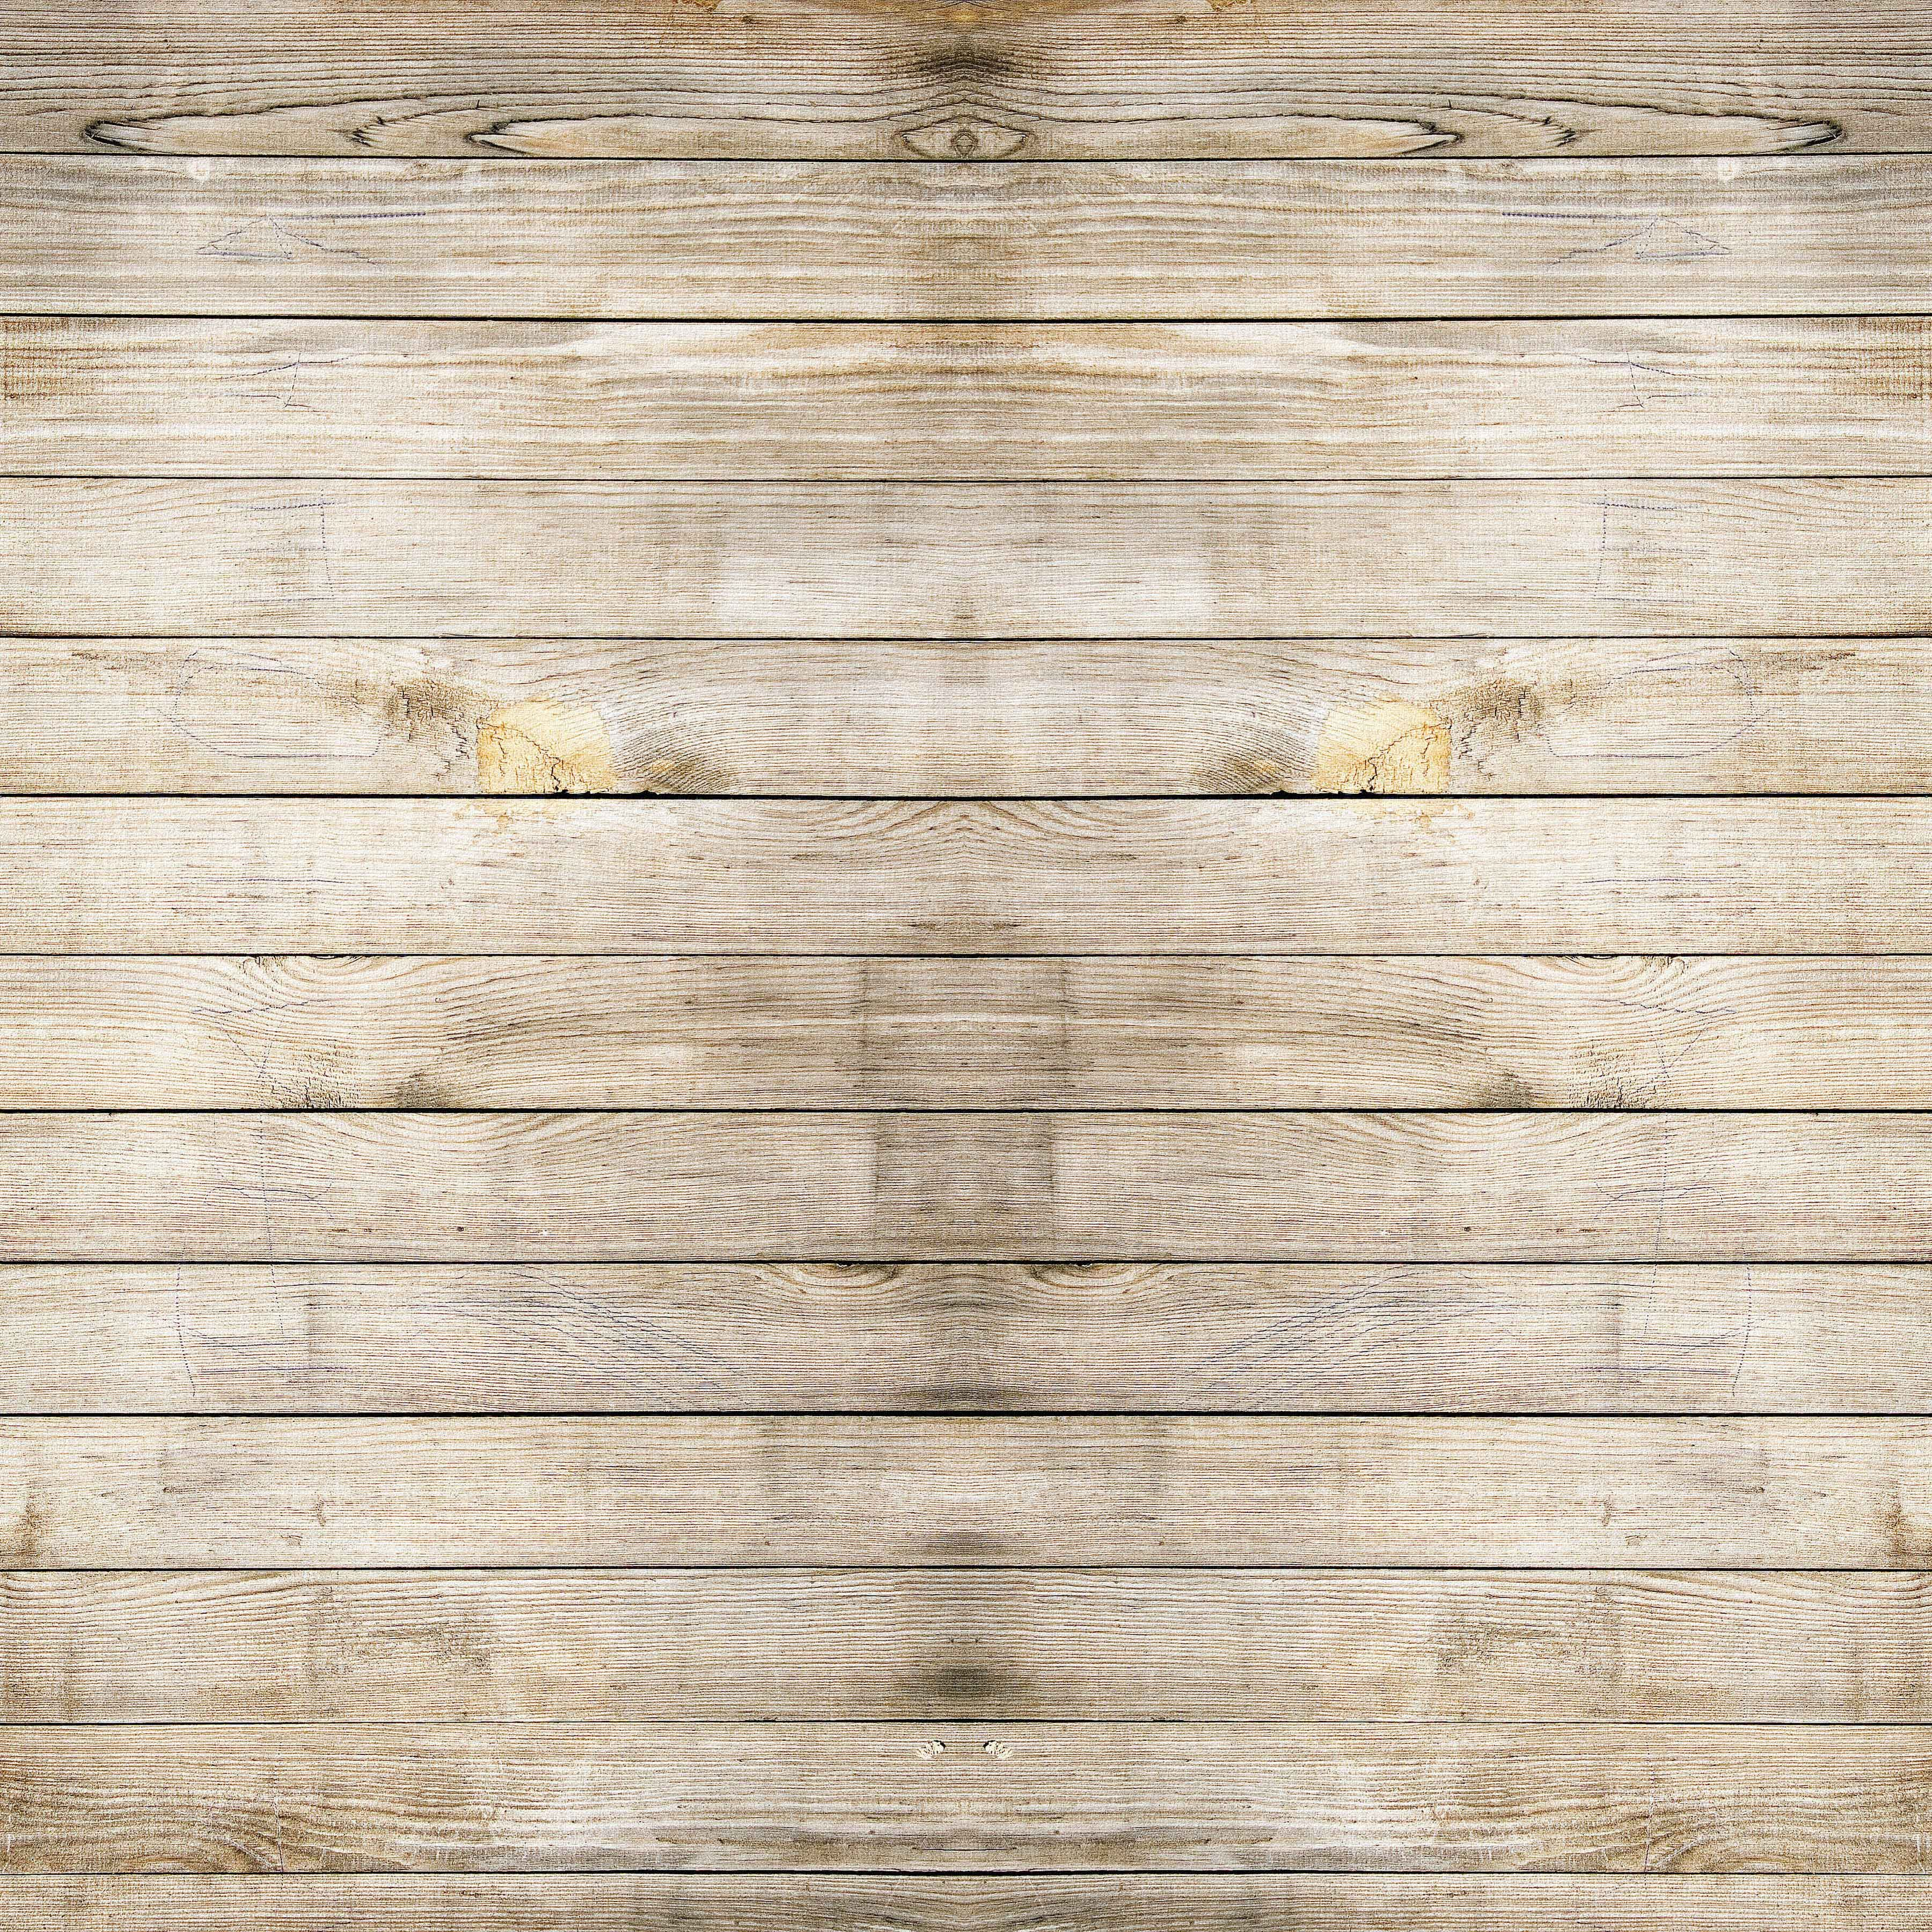 rustic wooden background - photo #31